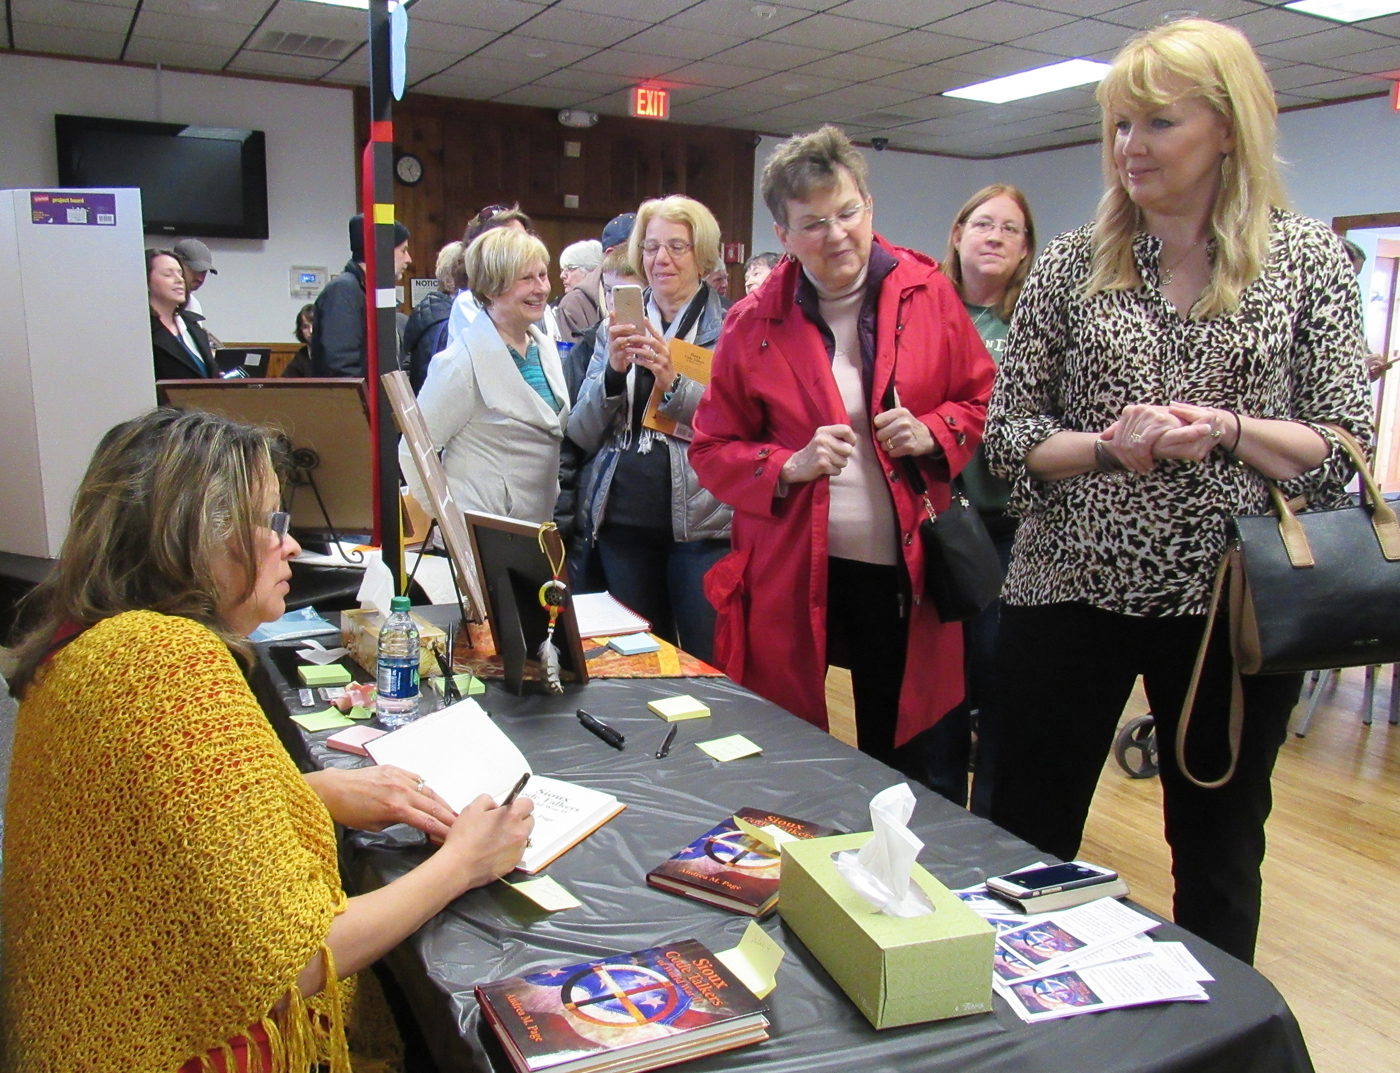 Local author/educator Andrea M. Page, seated at left, signs copies of her book, Sioux Code Talkers of World War II, during a book launch event held April 8 in Spencerport. K. Gabalski photo